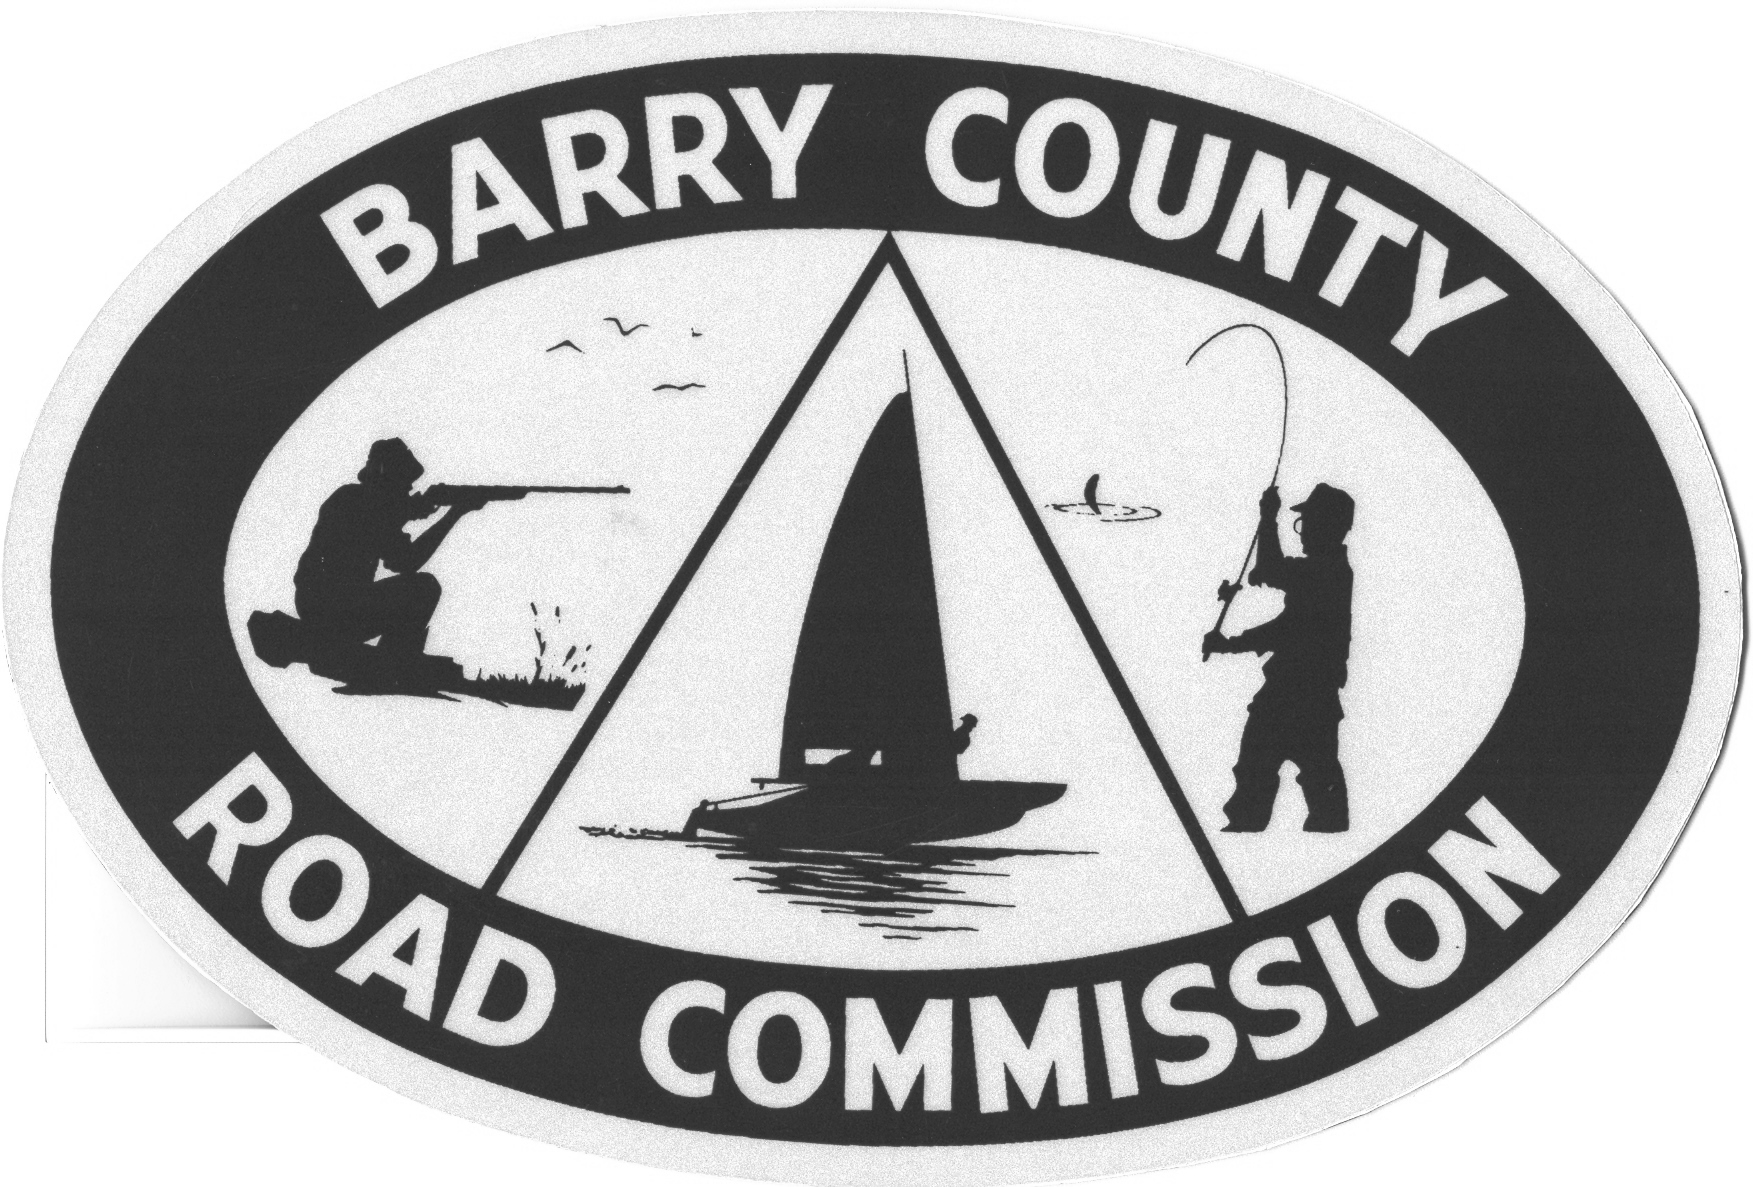 Barry County Road Commission